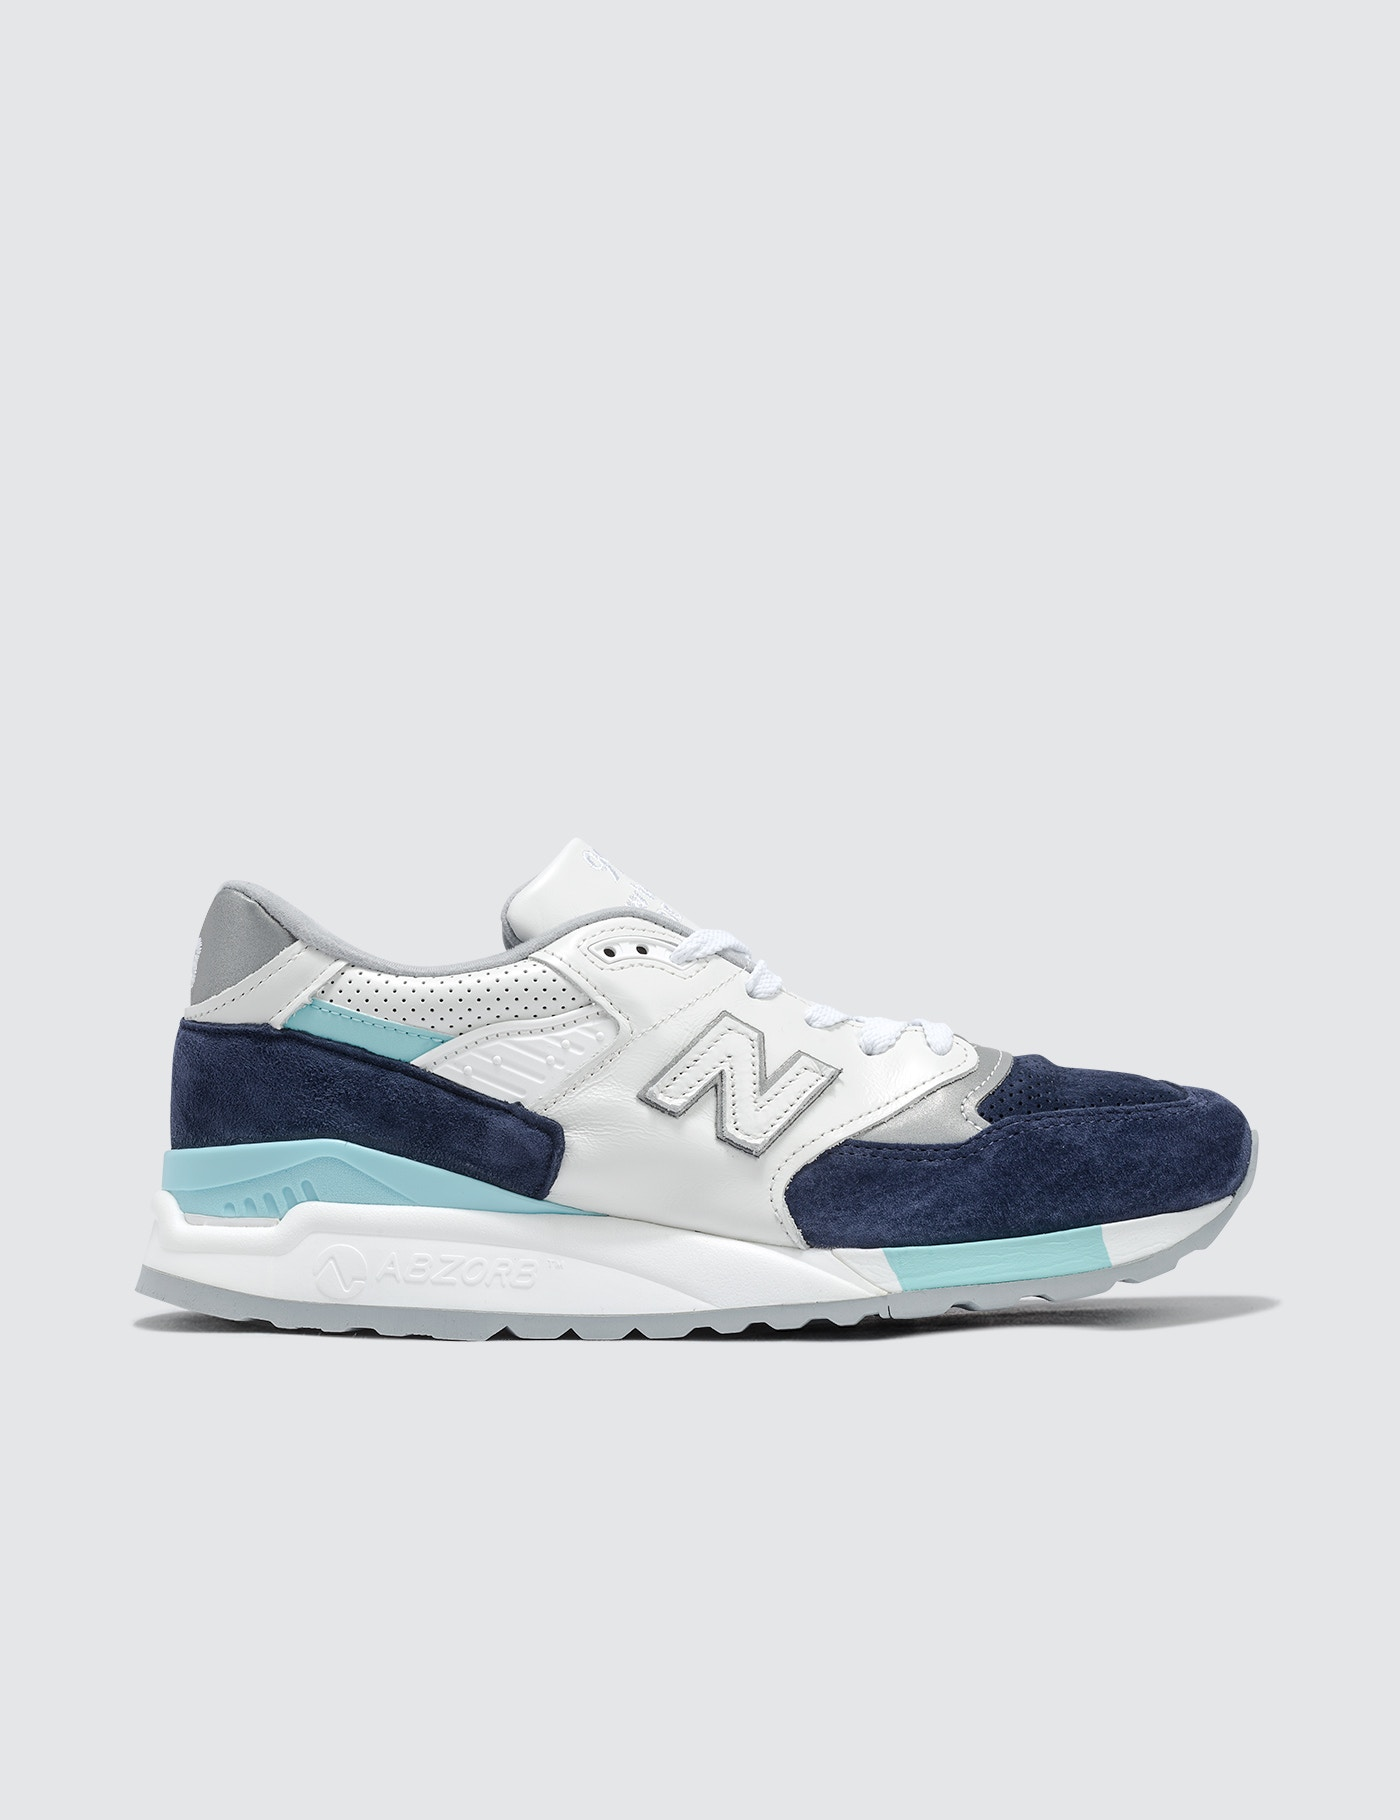 lowest price 983f5 937ef Made In USA 998 V1, New Balance